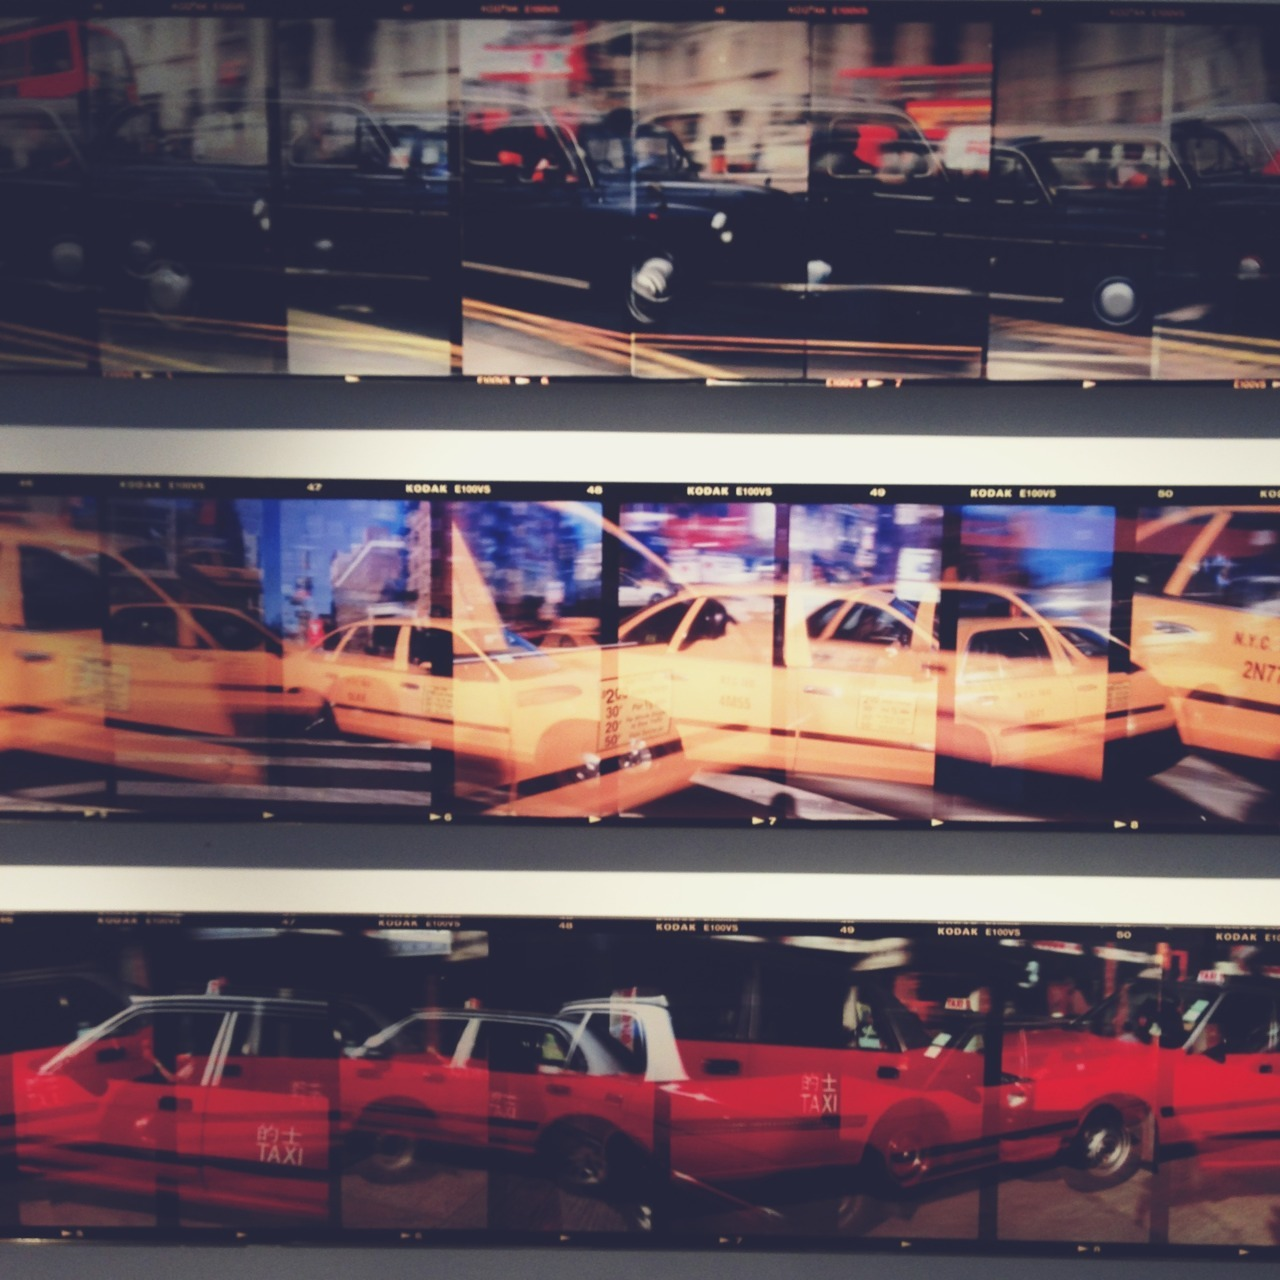 bchk:  taxicabs of london, new york and hong kong. coolest art installation I've seen in a while.